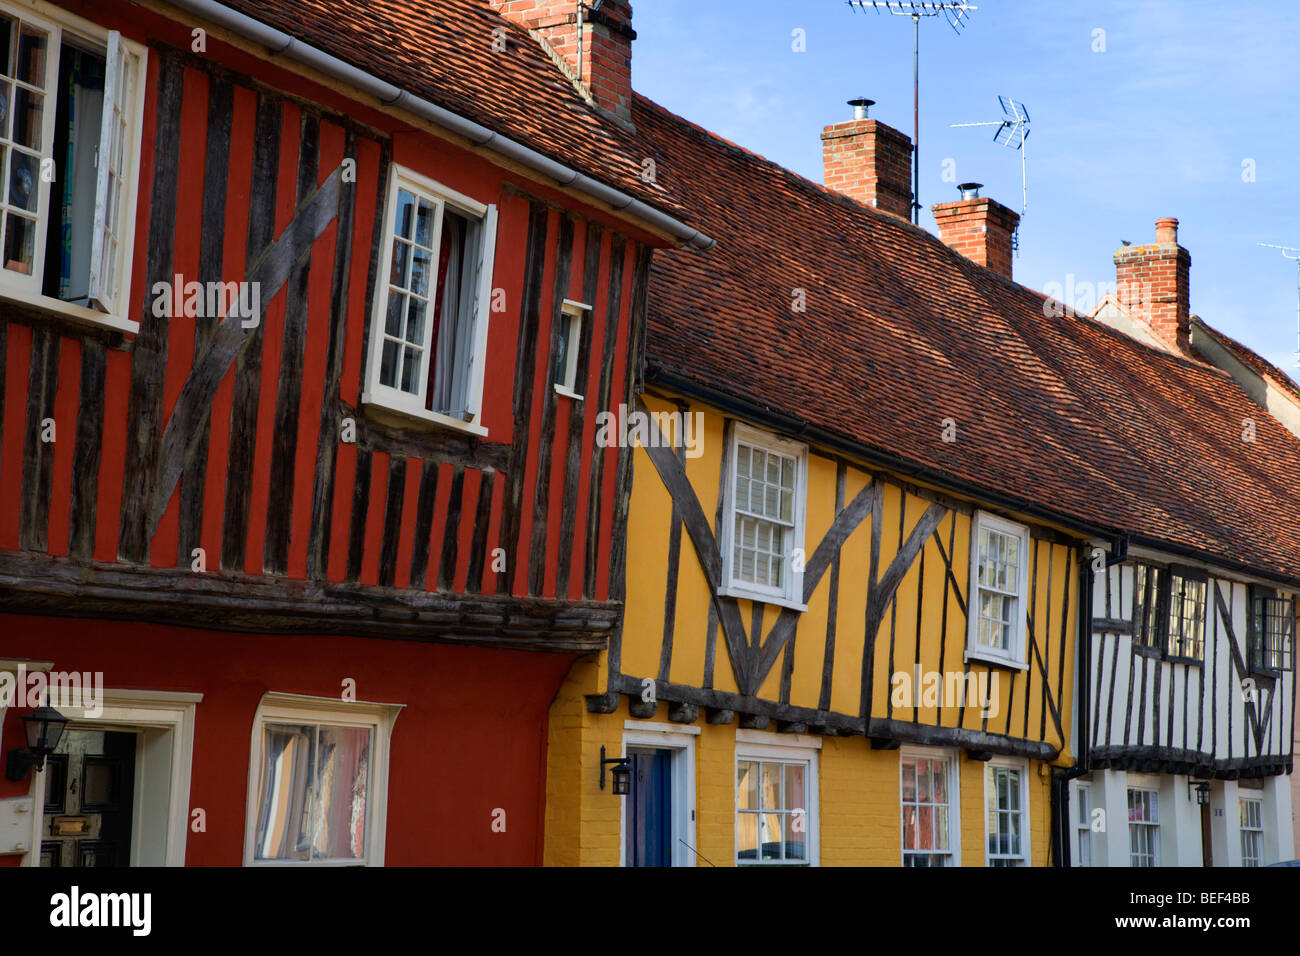 Colourful Half Timbered Buildings Nayland Suffolk England - Stock Image